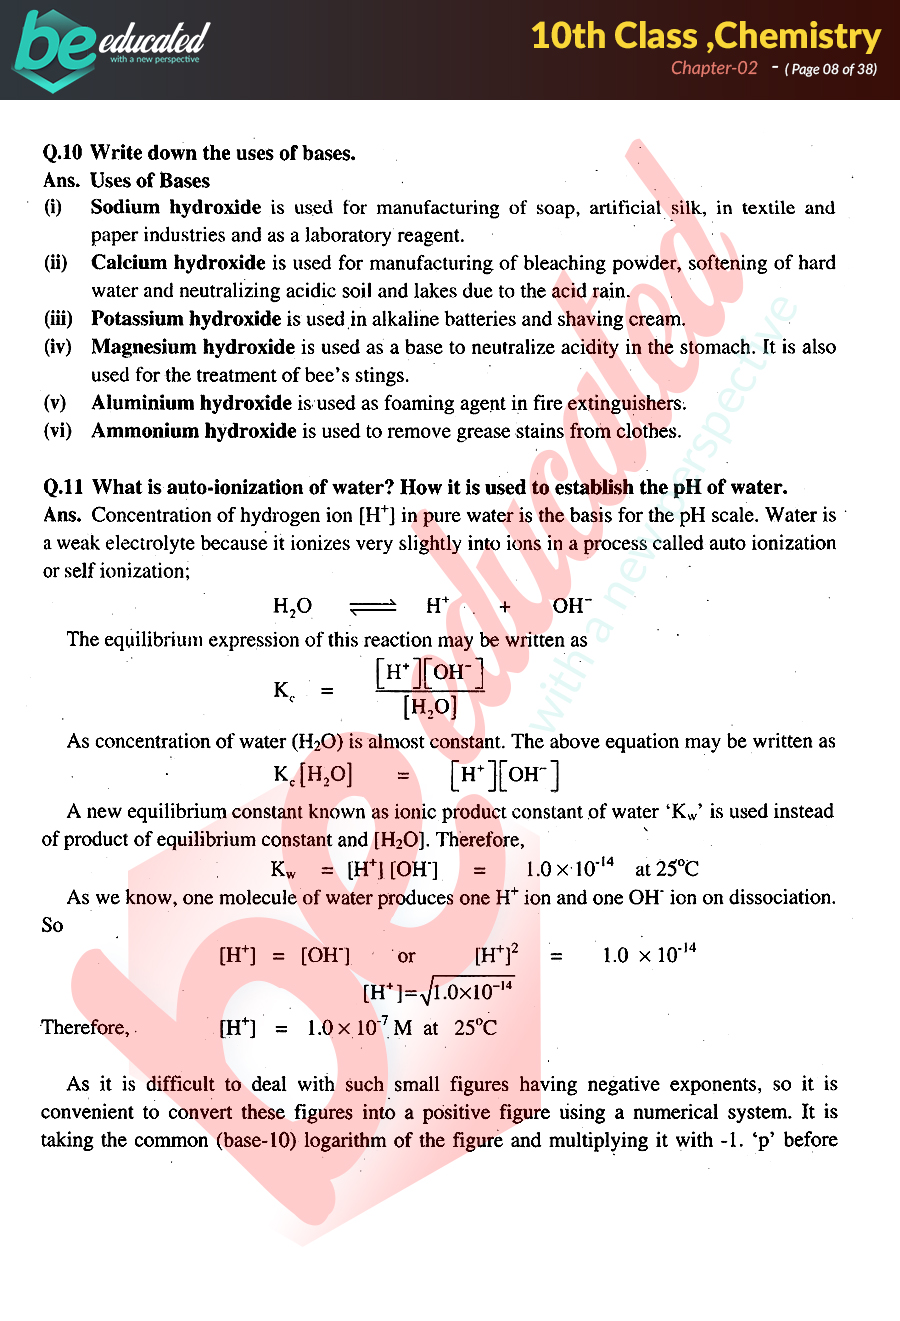 Chapter 2 Chemistry 10th Class Notes - Matric Part 2 Notes